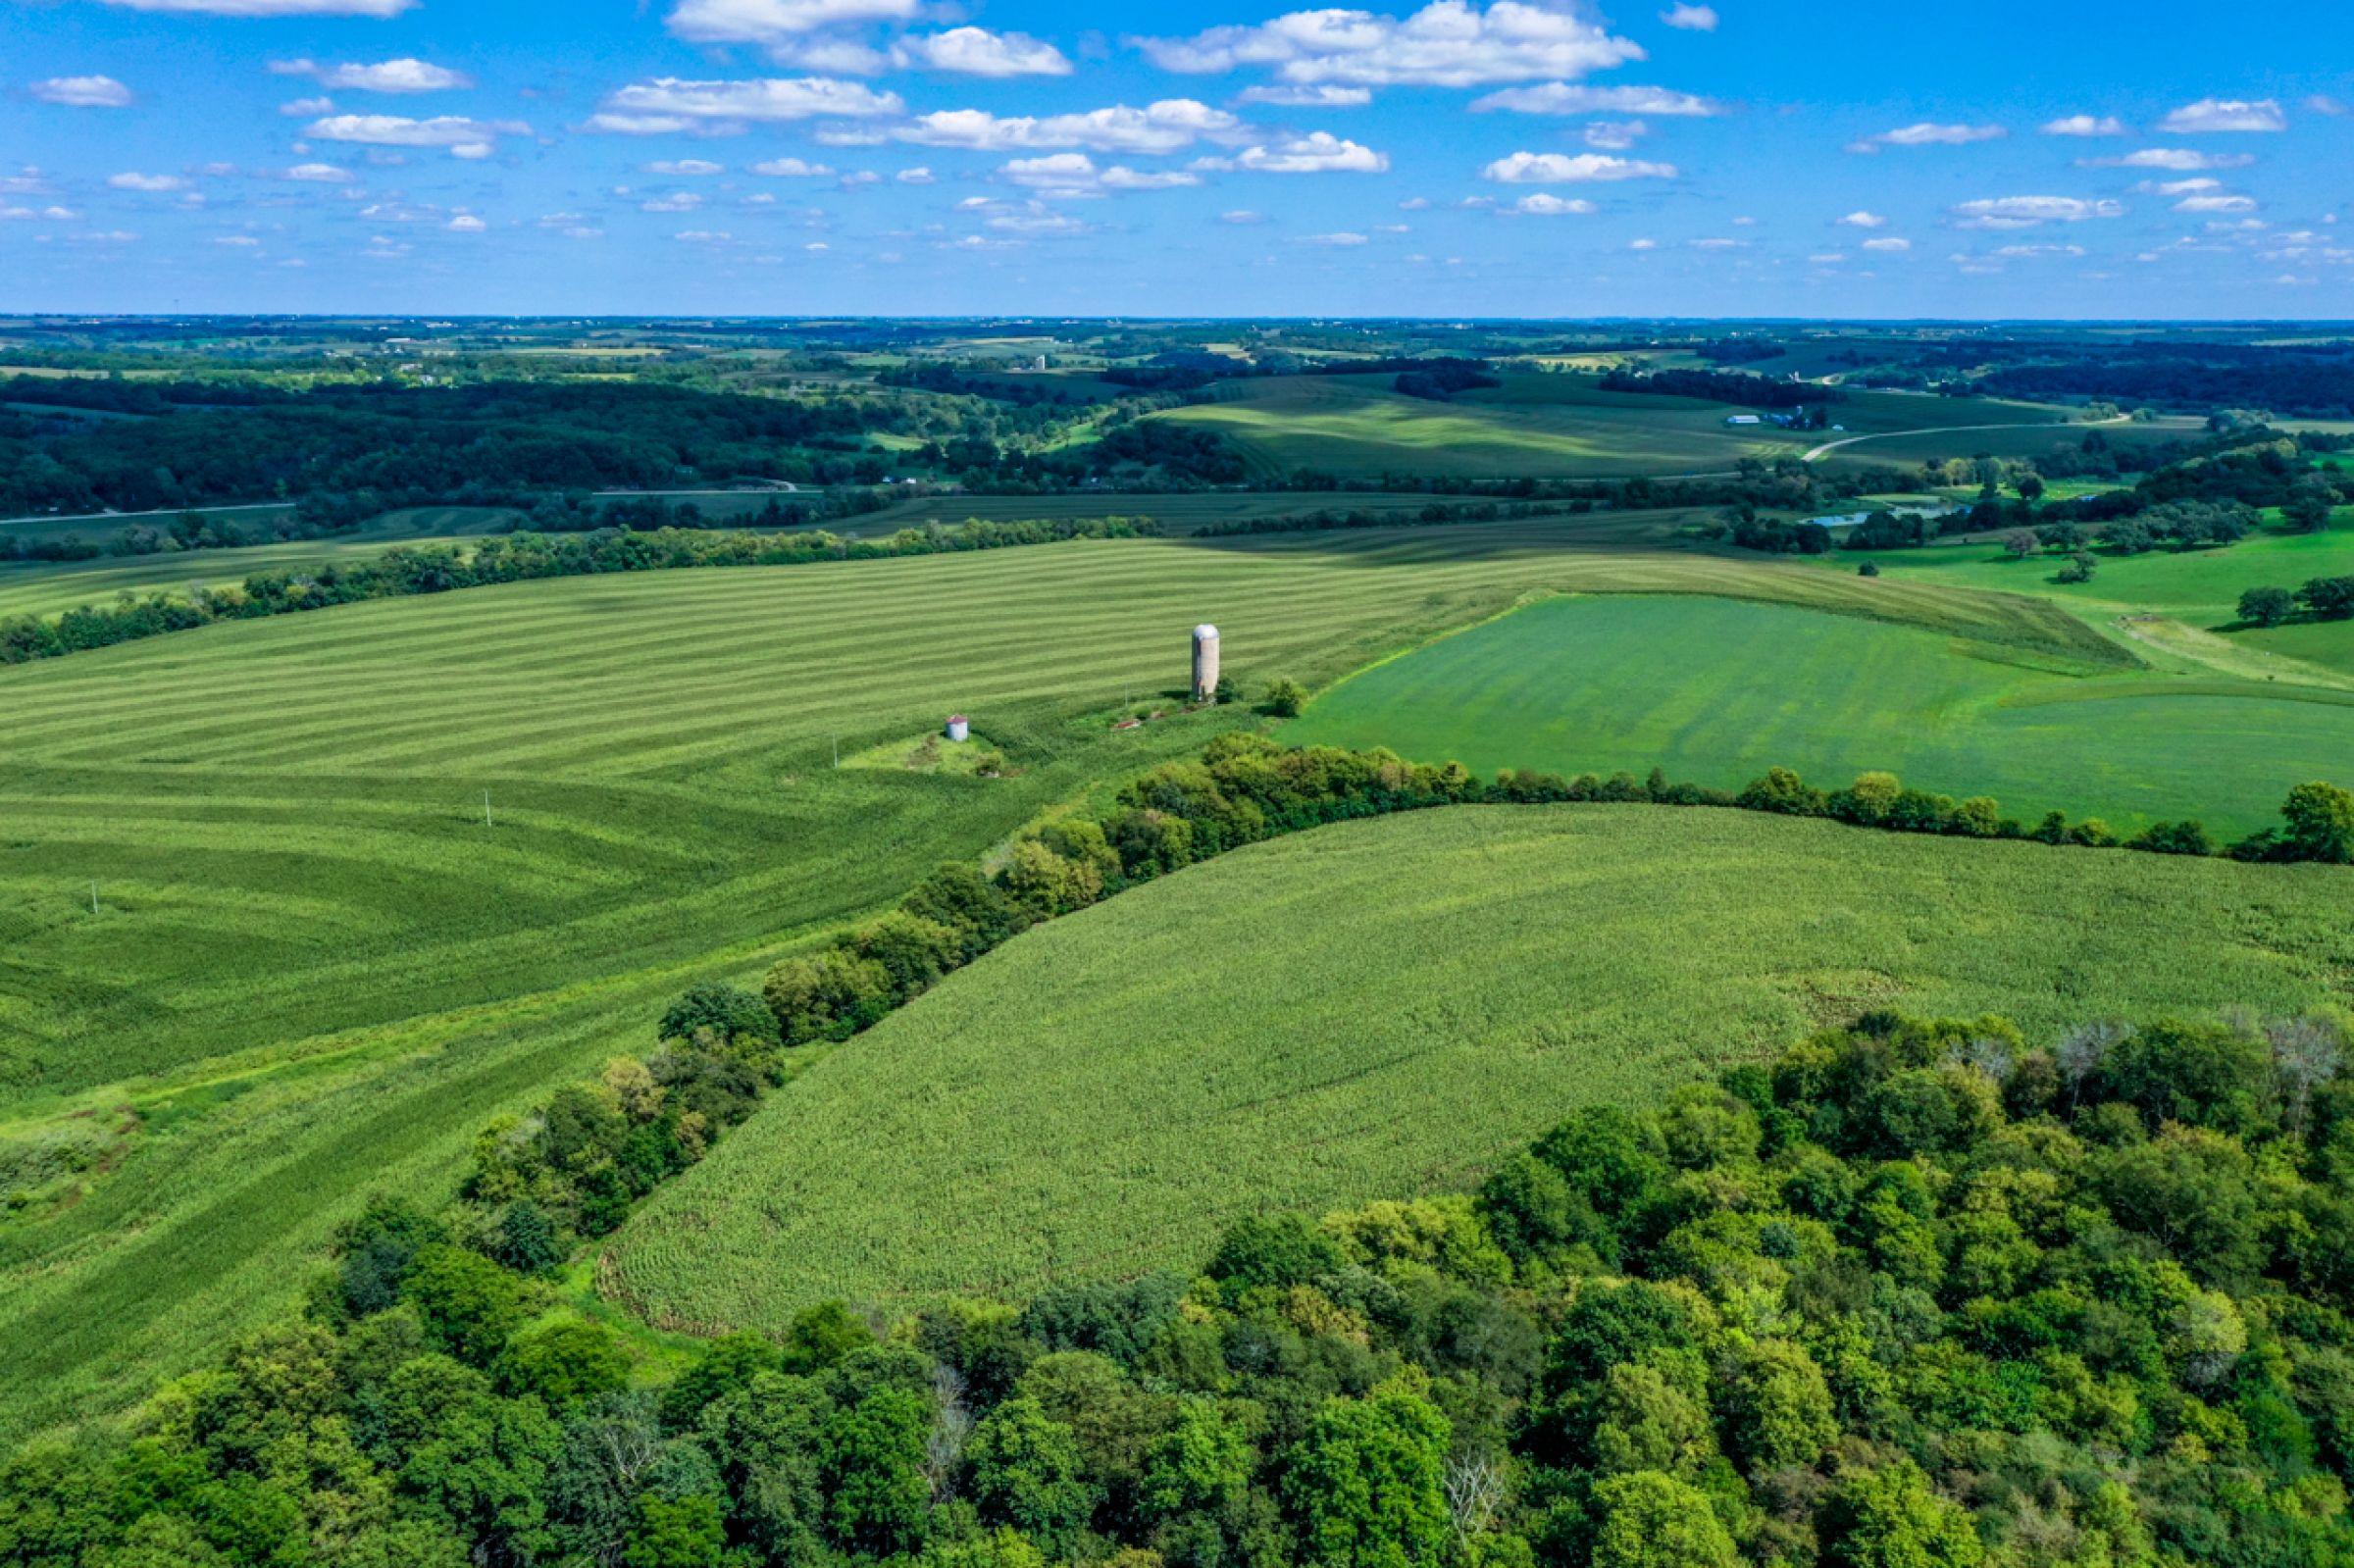 land-lafayette-county-wisconsin-120-acres-listing-number-15729-18-2021-09-03-204848.jpg